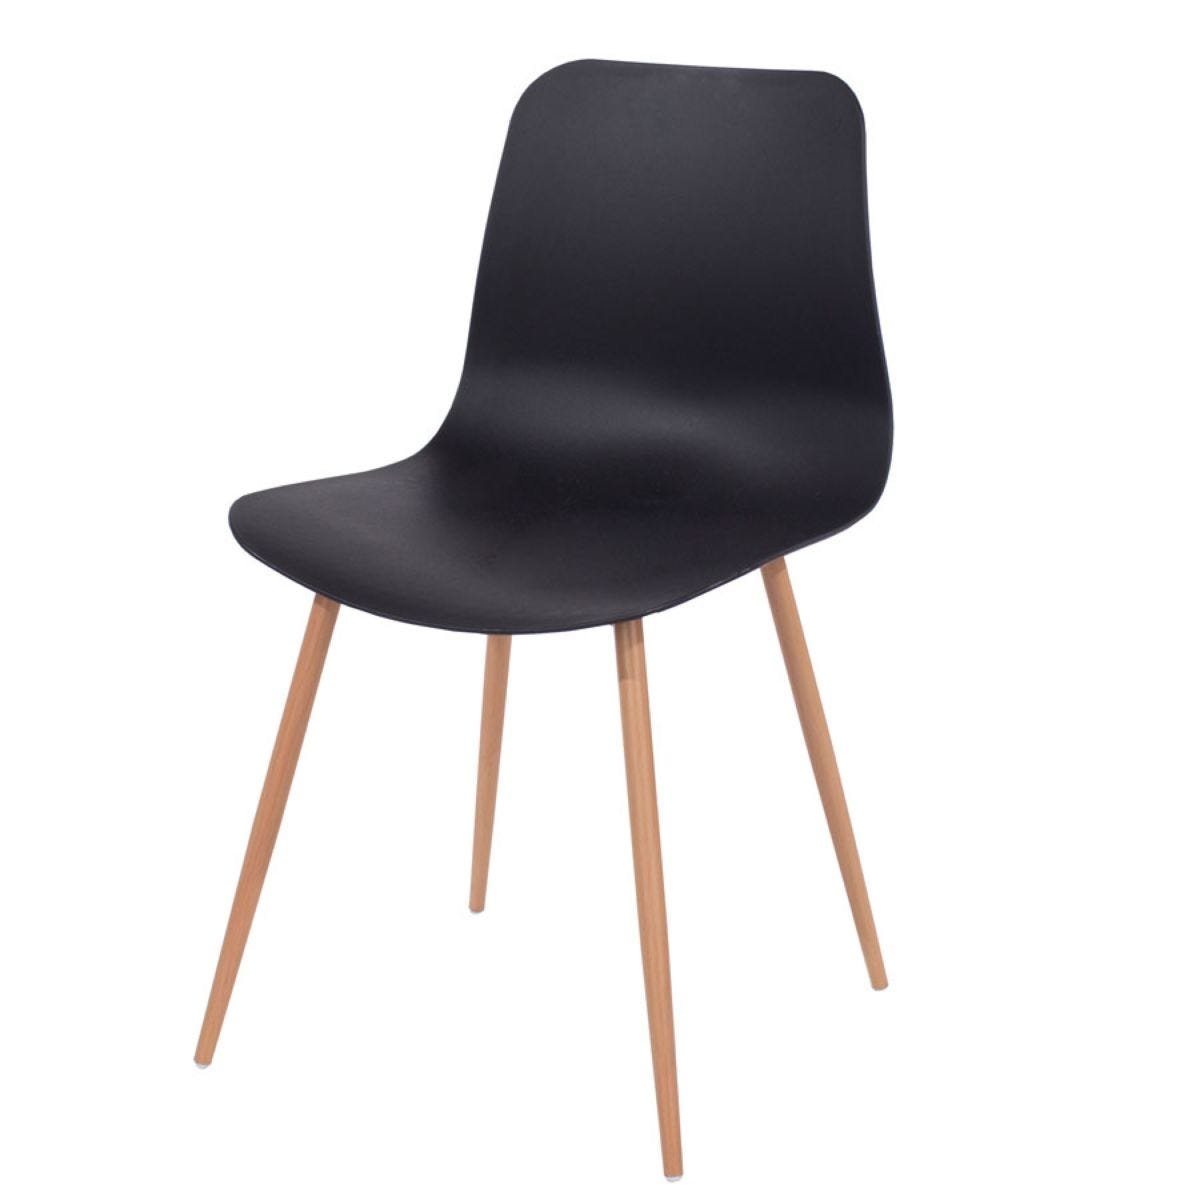 Roloku Pair of Plastic Chairs with Wood-Effect Legs - Black